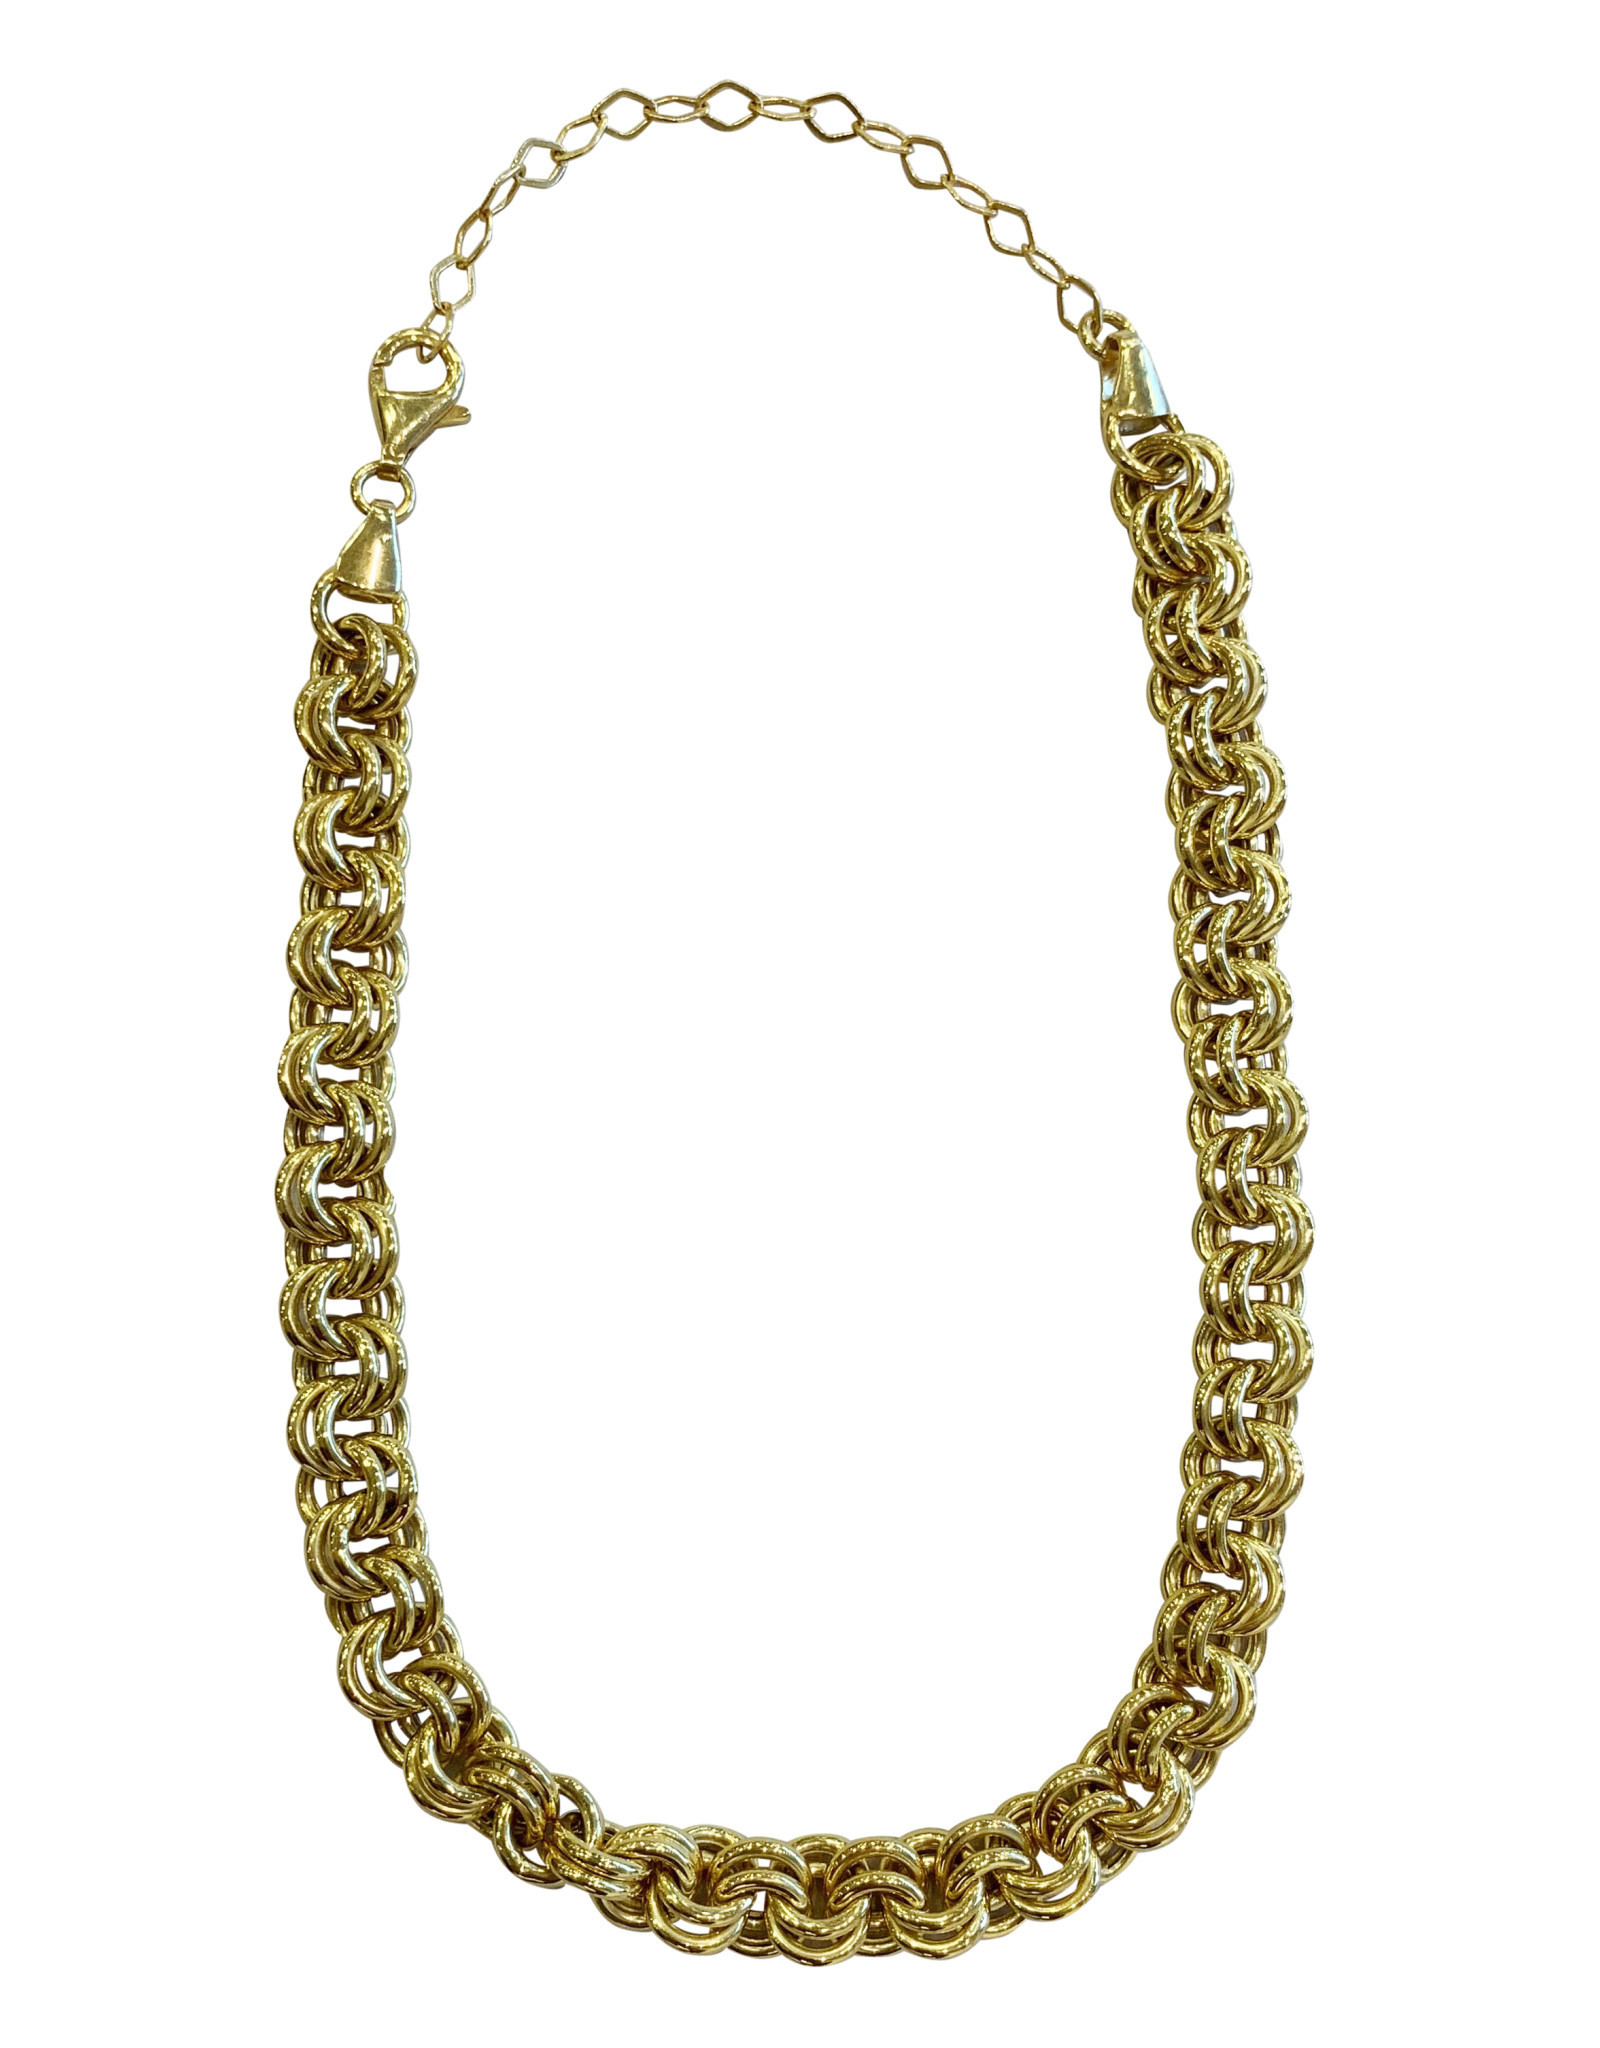 Adinas Hollow Rounded Rolo Necklace